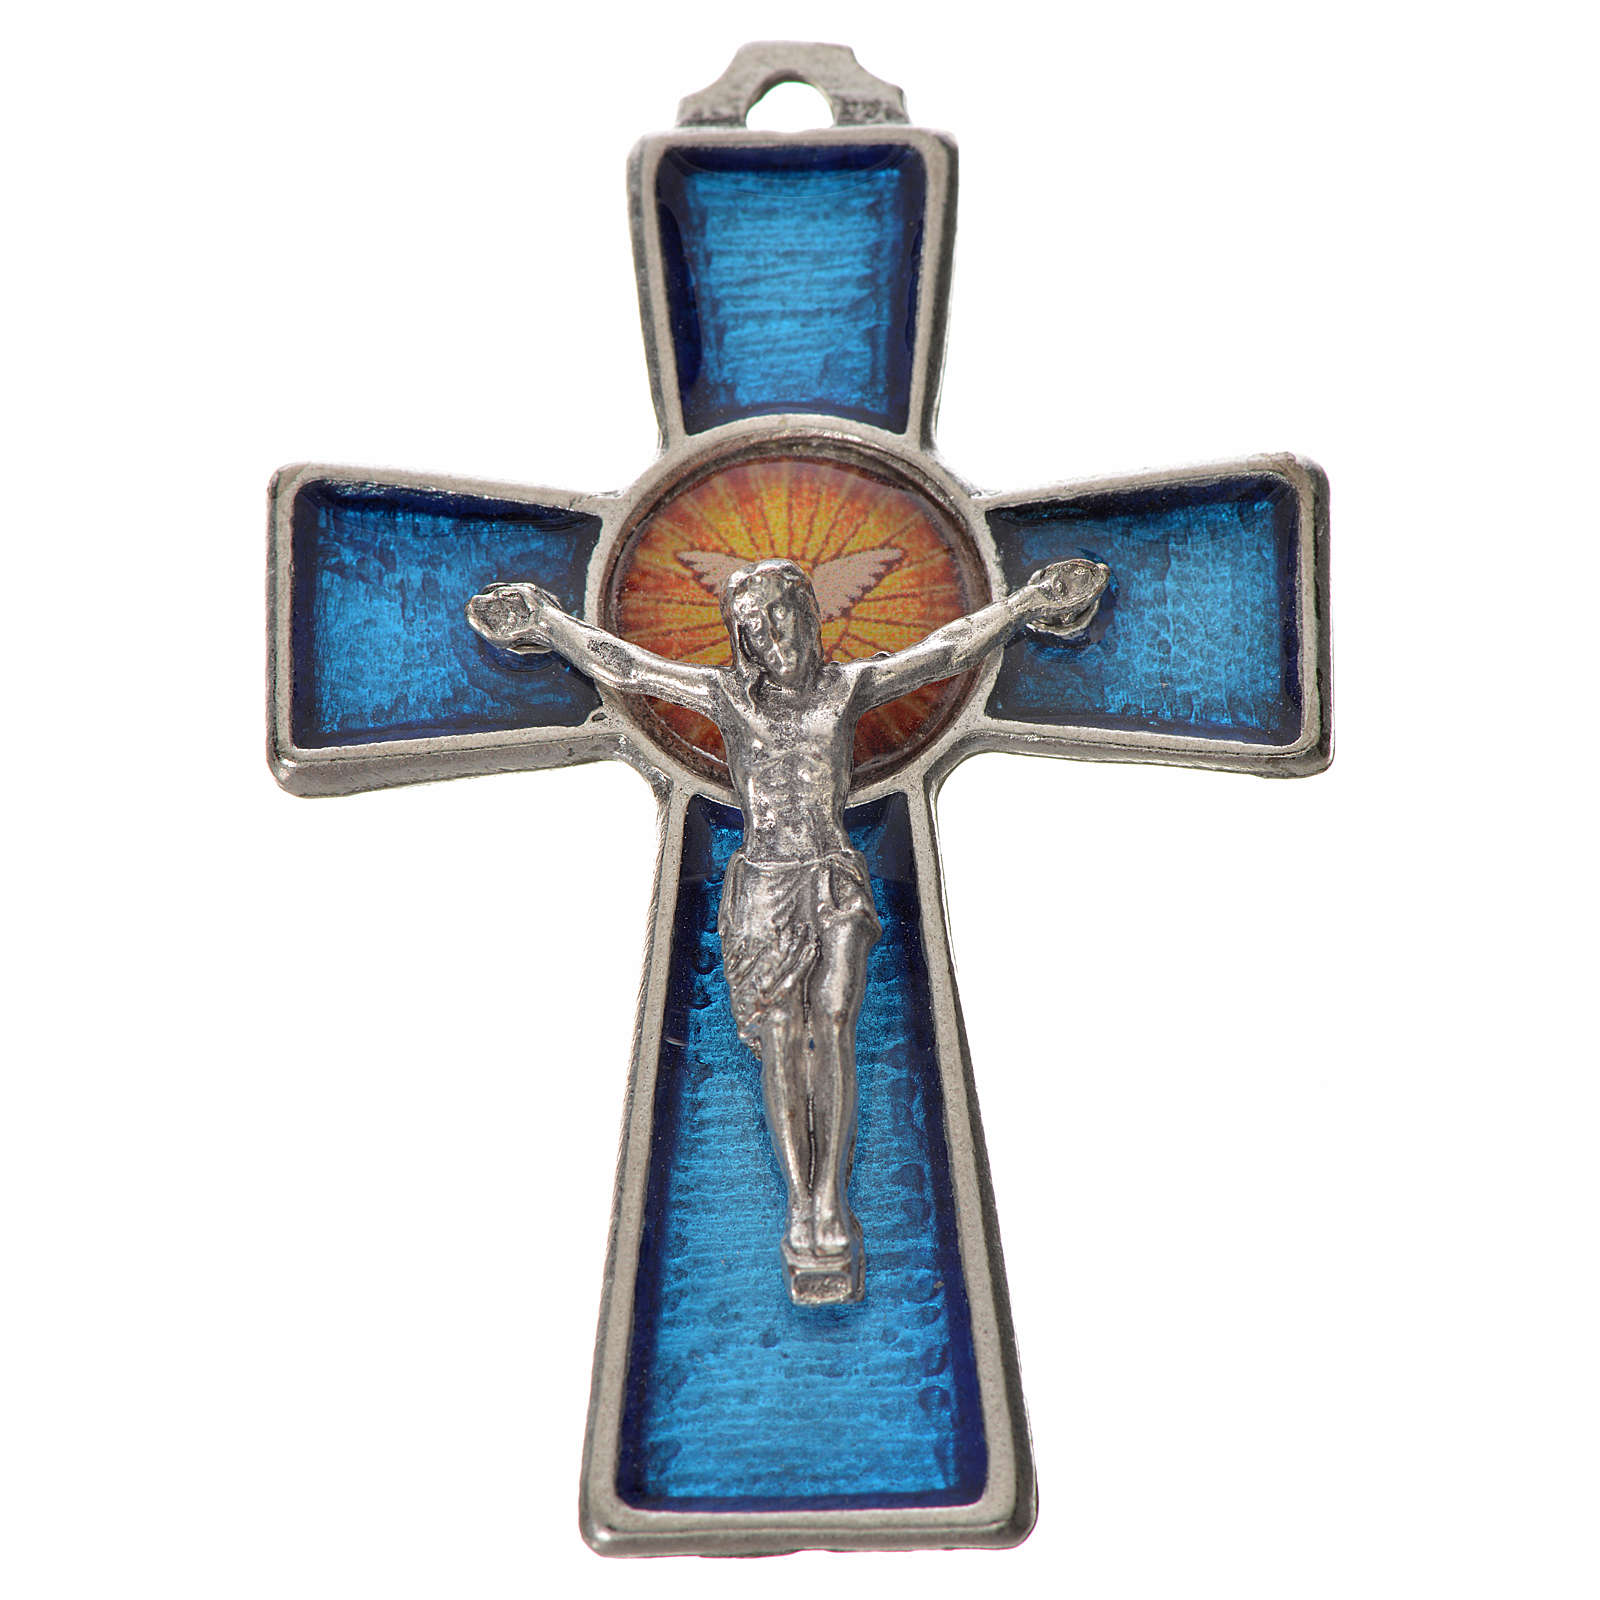 Holy Spirit cross 5x3.5cm in zamak, blue enamel 4